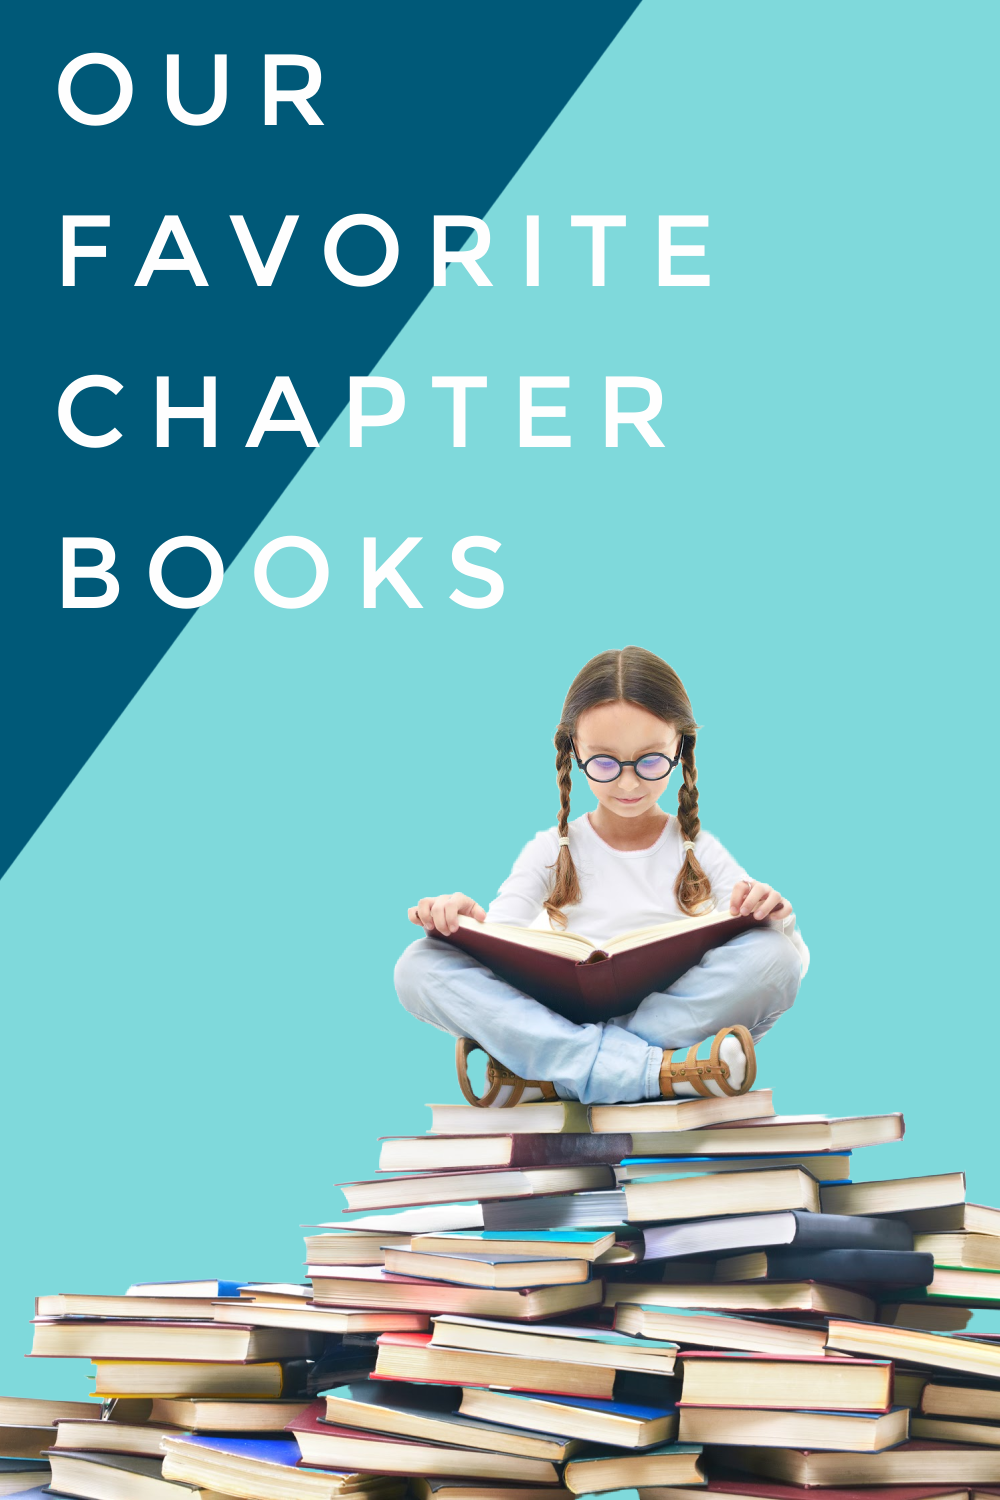 In this Montessori parenting podcast, we explore some of our favorite Montessori friendly chapter books for older and younger kids.